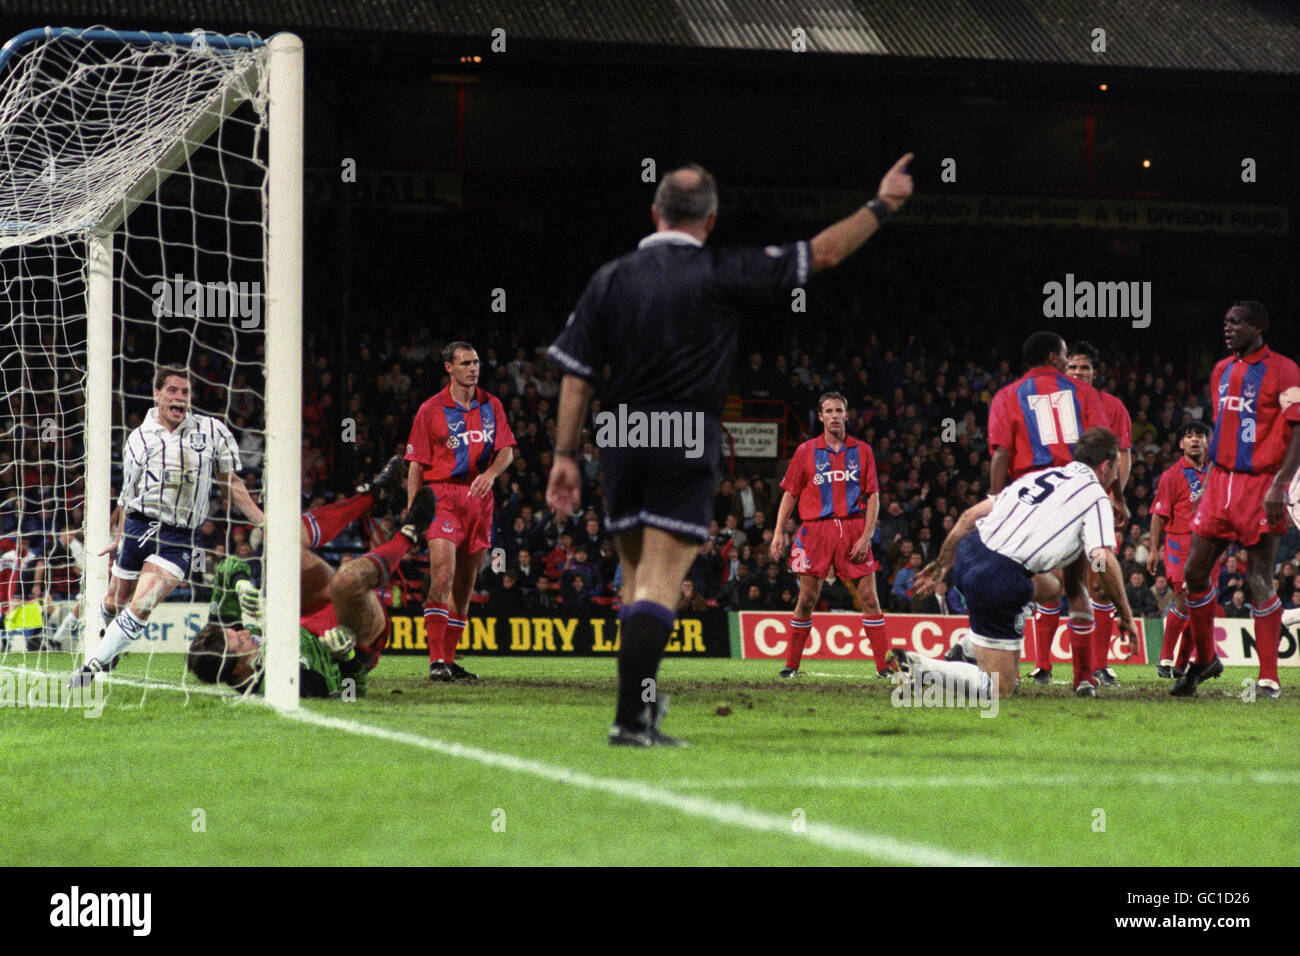 Soccer - Coca-Cola Cup - Round Three - Replay - Crystal Palace v Everton - Selhurst Park - Stock Image